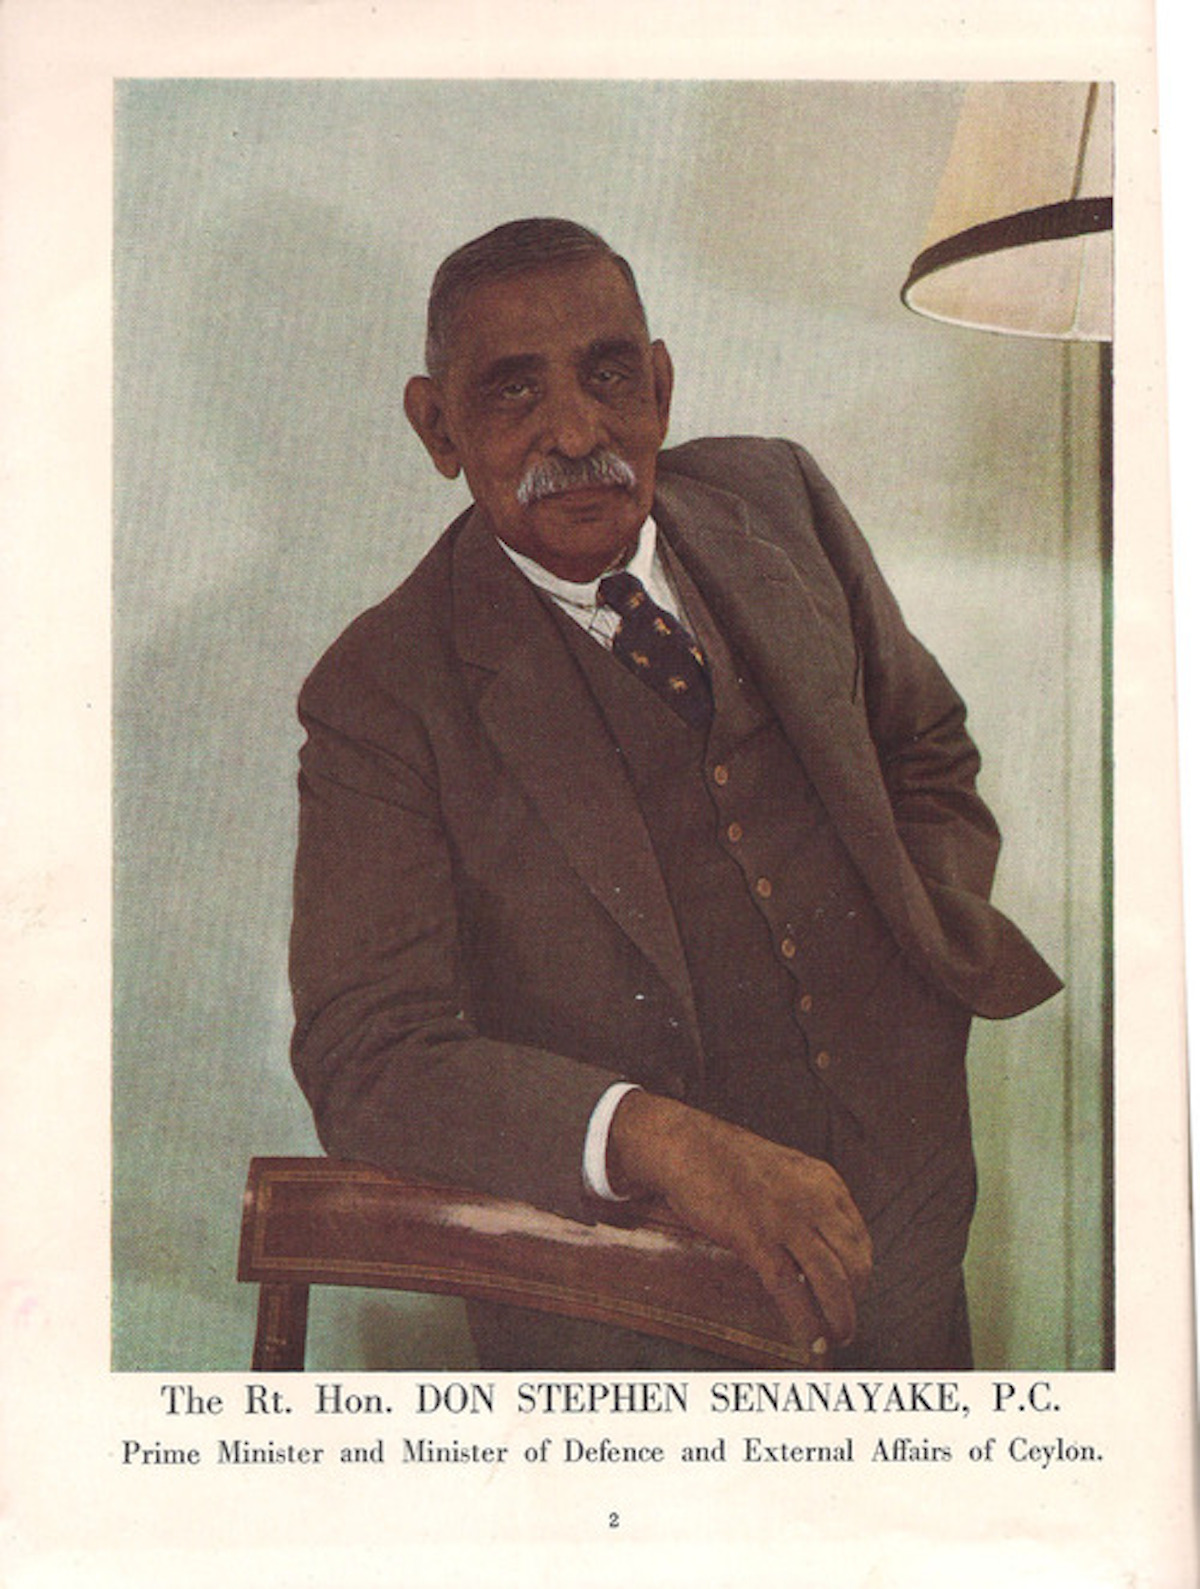 DS Photo in Empire Youth Annual 1952